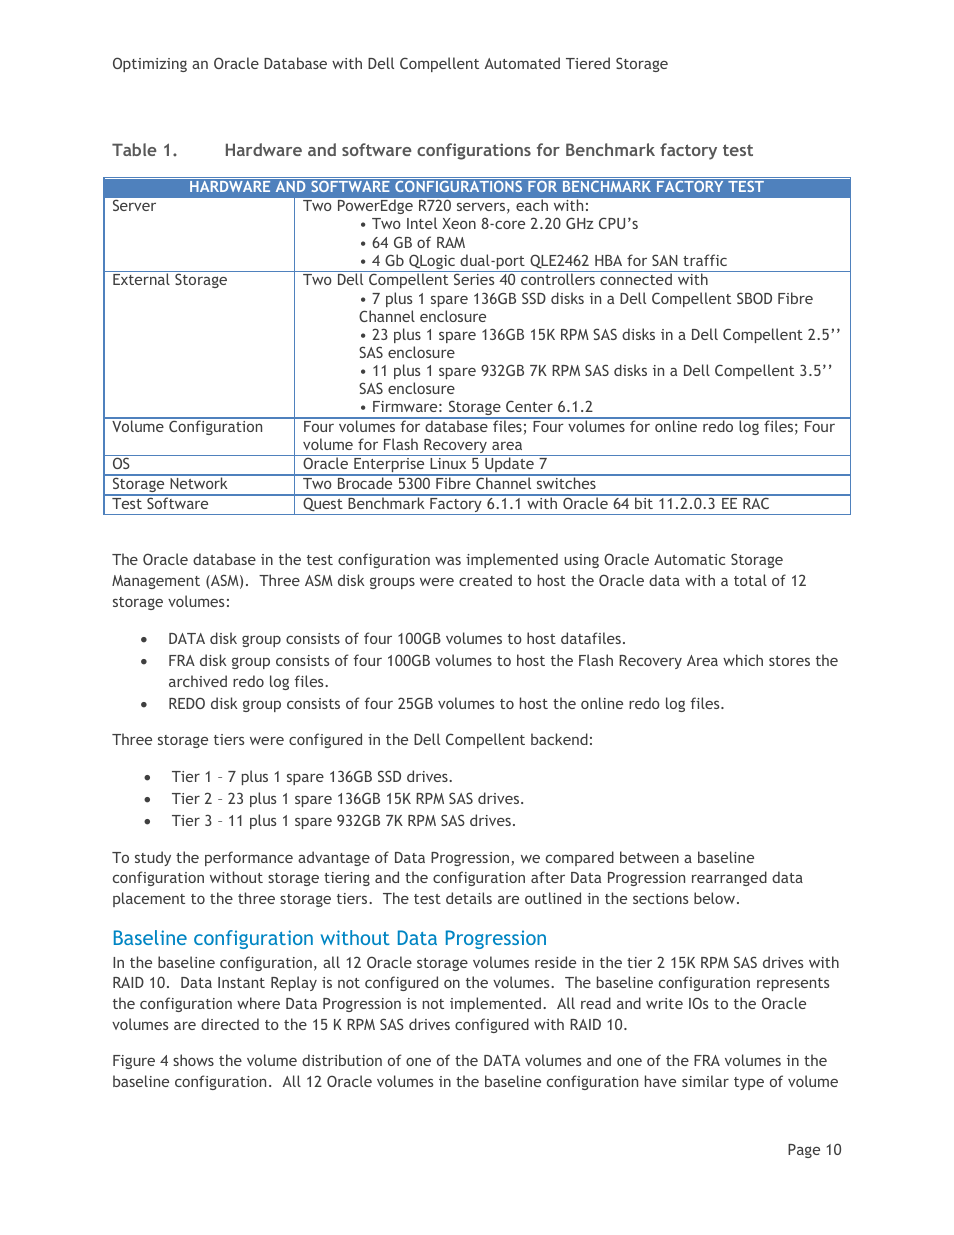 Baseline configuration without data progression, Table 1 | Dell